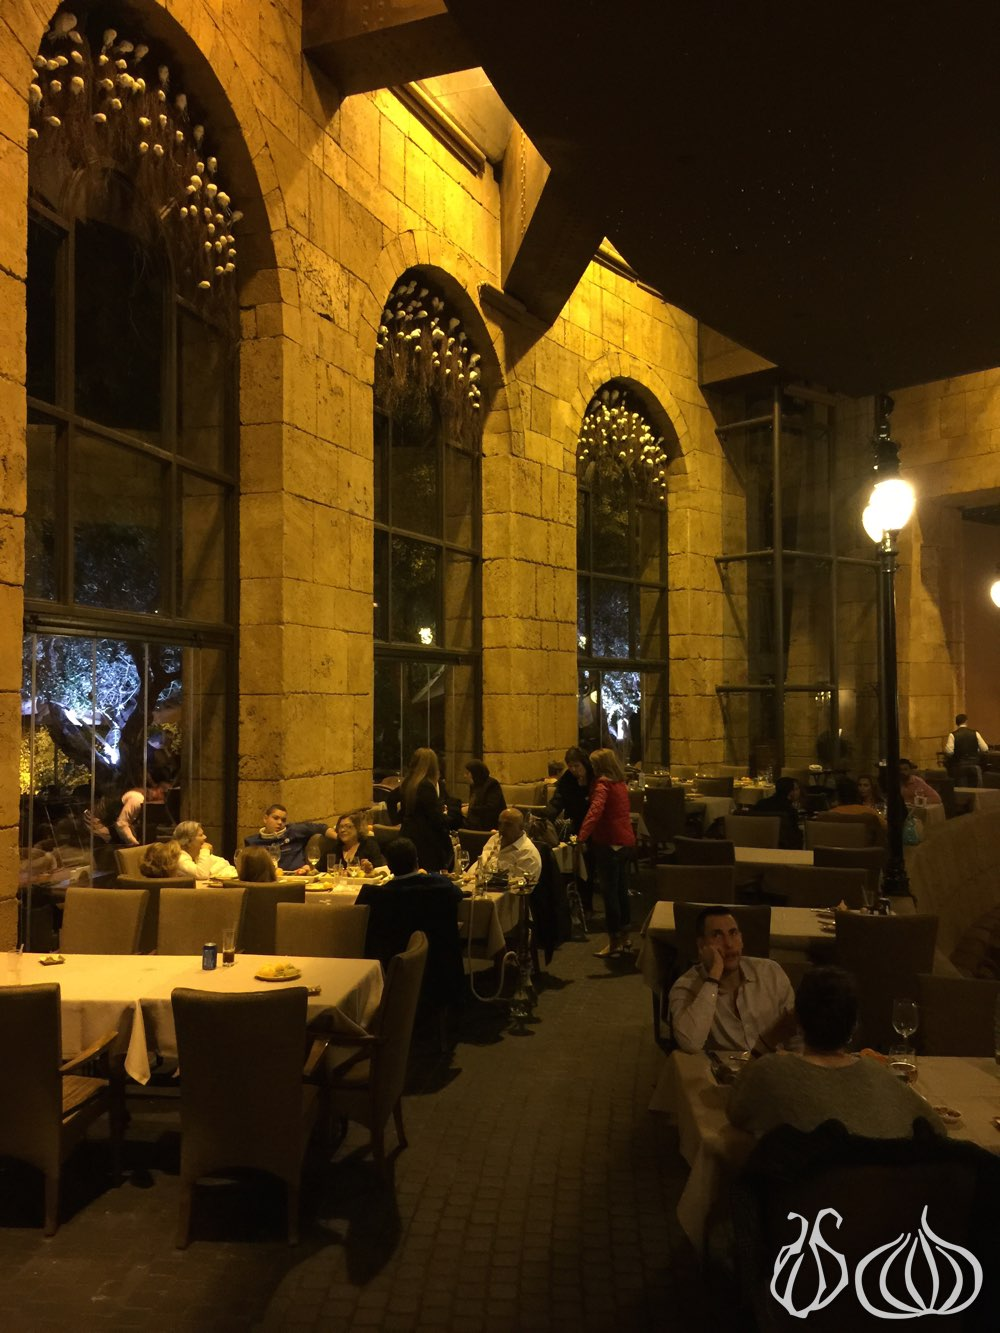 babel-lebanese-restaurant-review-dbayeh252015-01-07-08-22-06